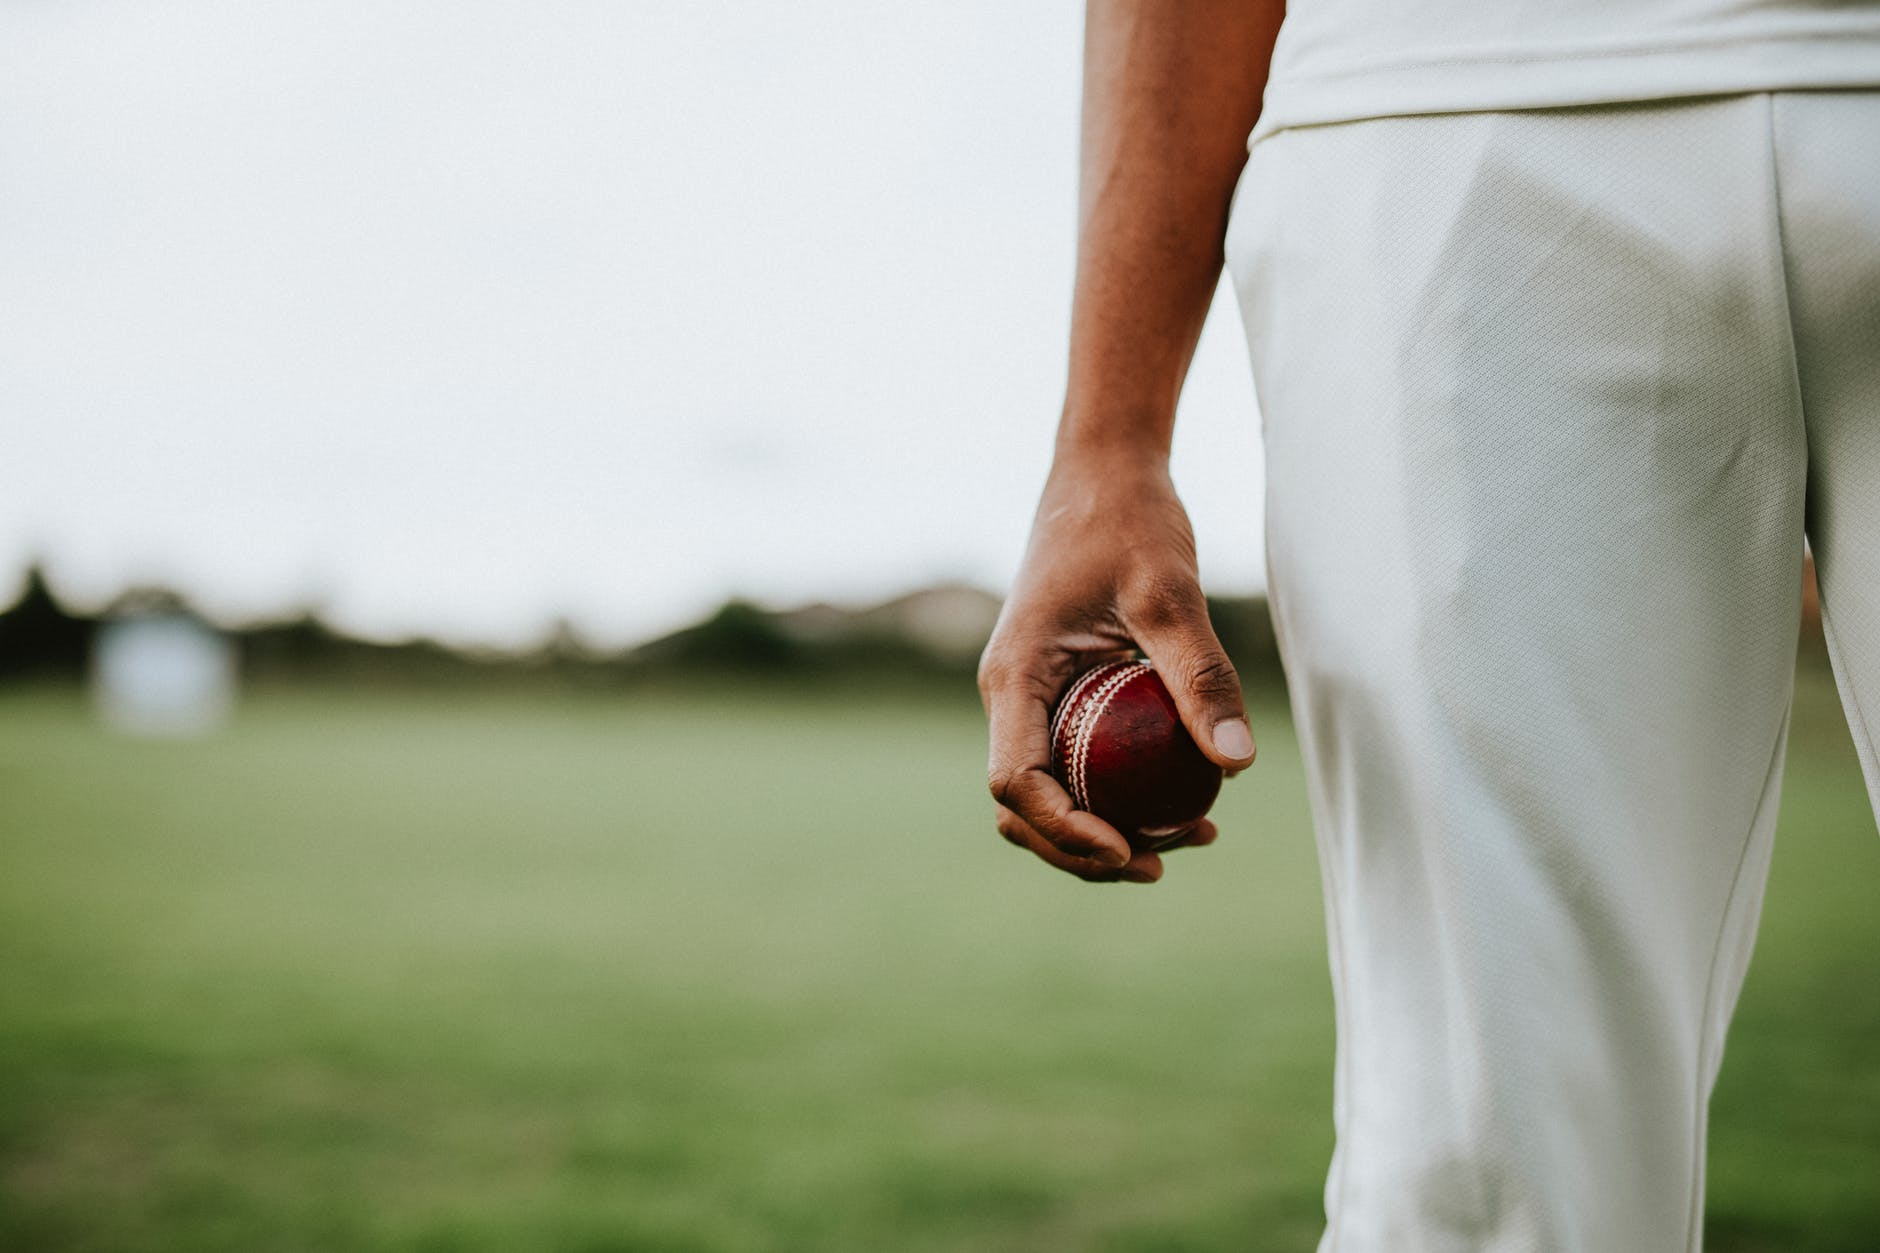 Sense of Belonging man holding cricket ball on a green field Post Image - 7 Personality Traits the Best Cricket Players Should Possess